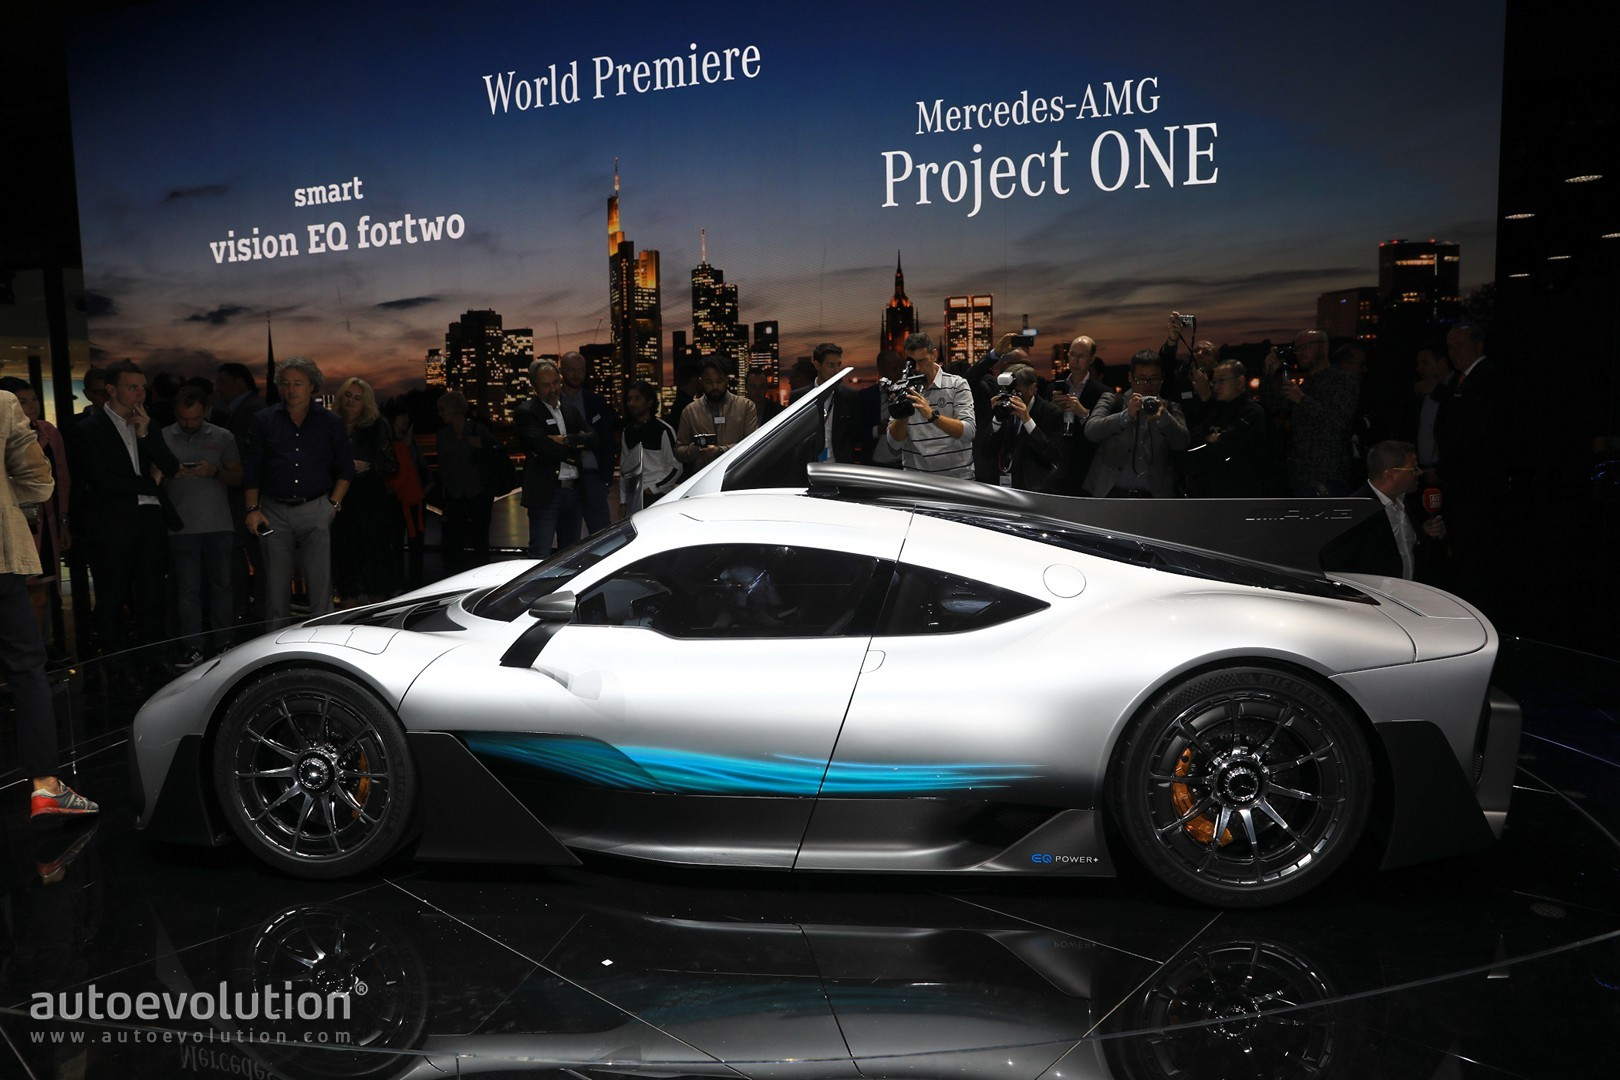 mercedes amg project one roadster looks amazing sadly won. Black Bedroom Furniture Sets. Home Design Ideas